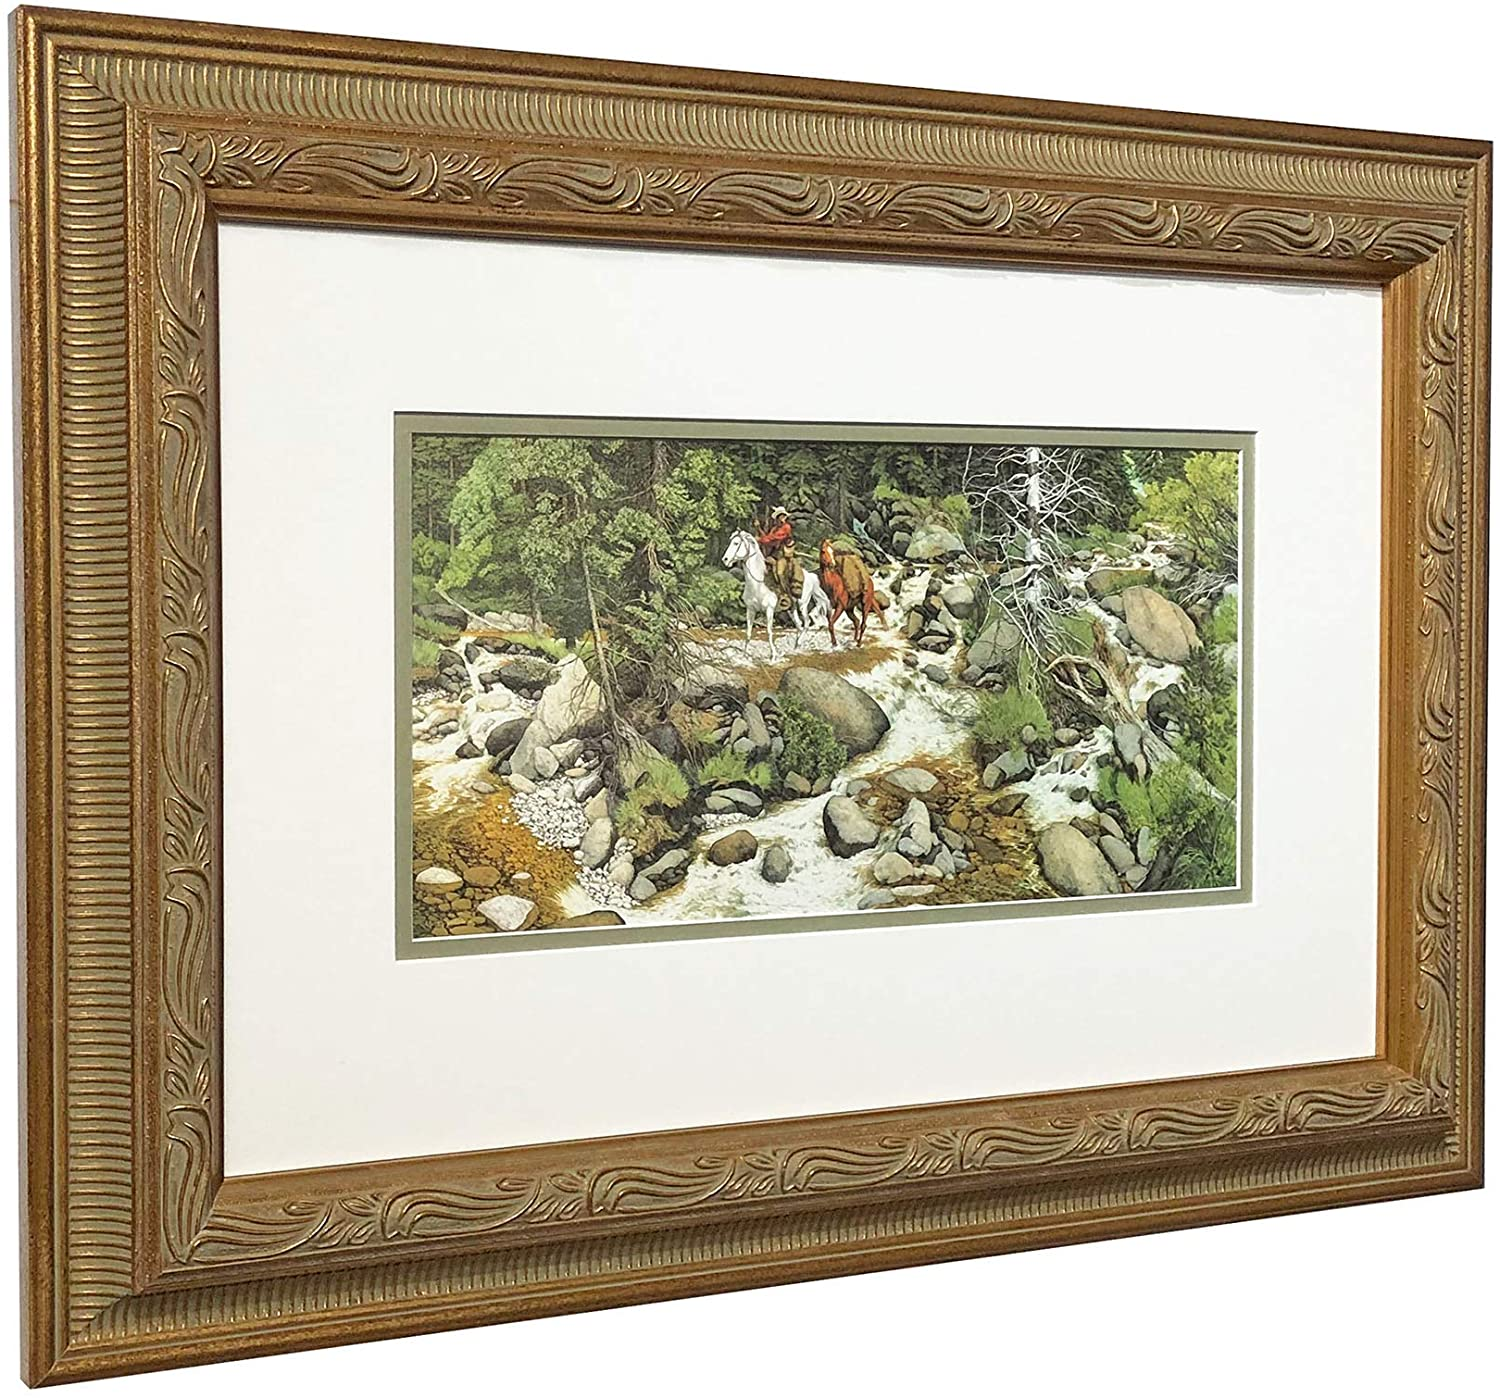 Amazon Com Bev Doolittle The Forest Has Eyes Matted Framed With Beautiful Gallery Frame Posters Prints